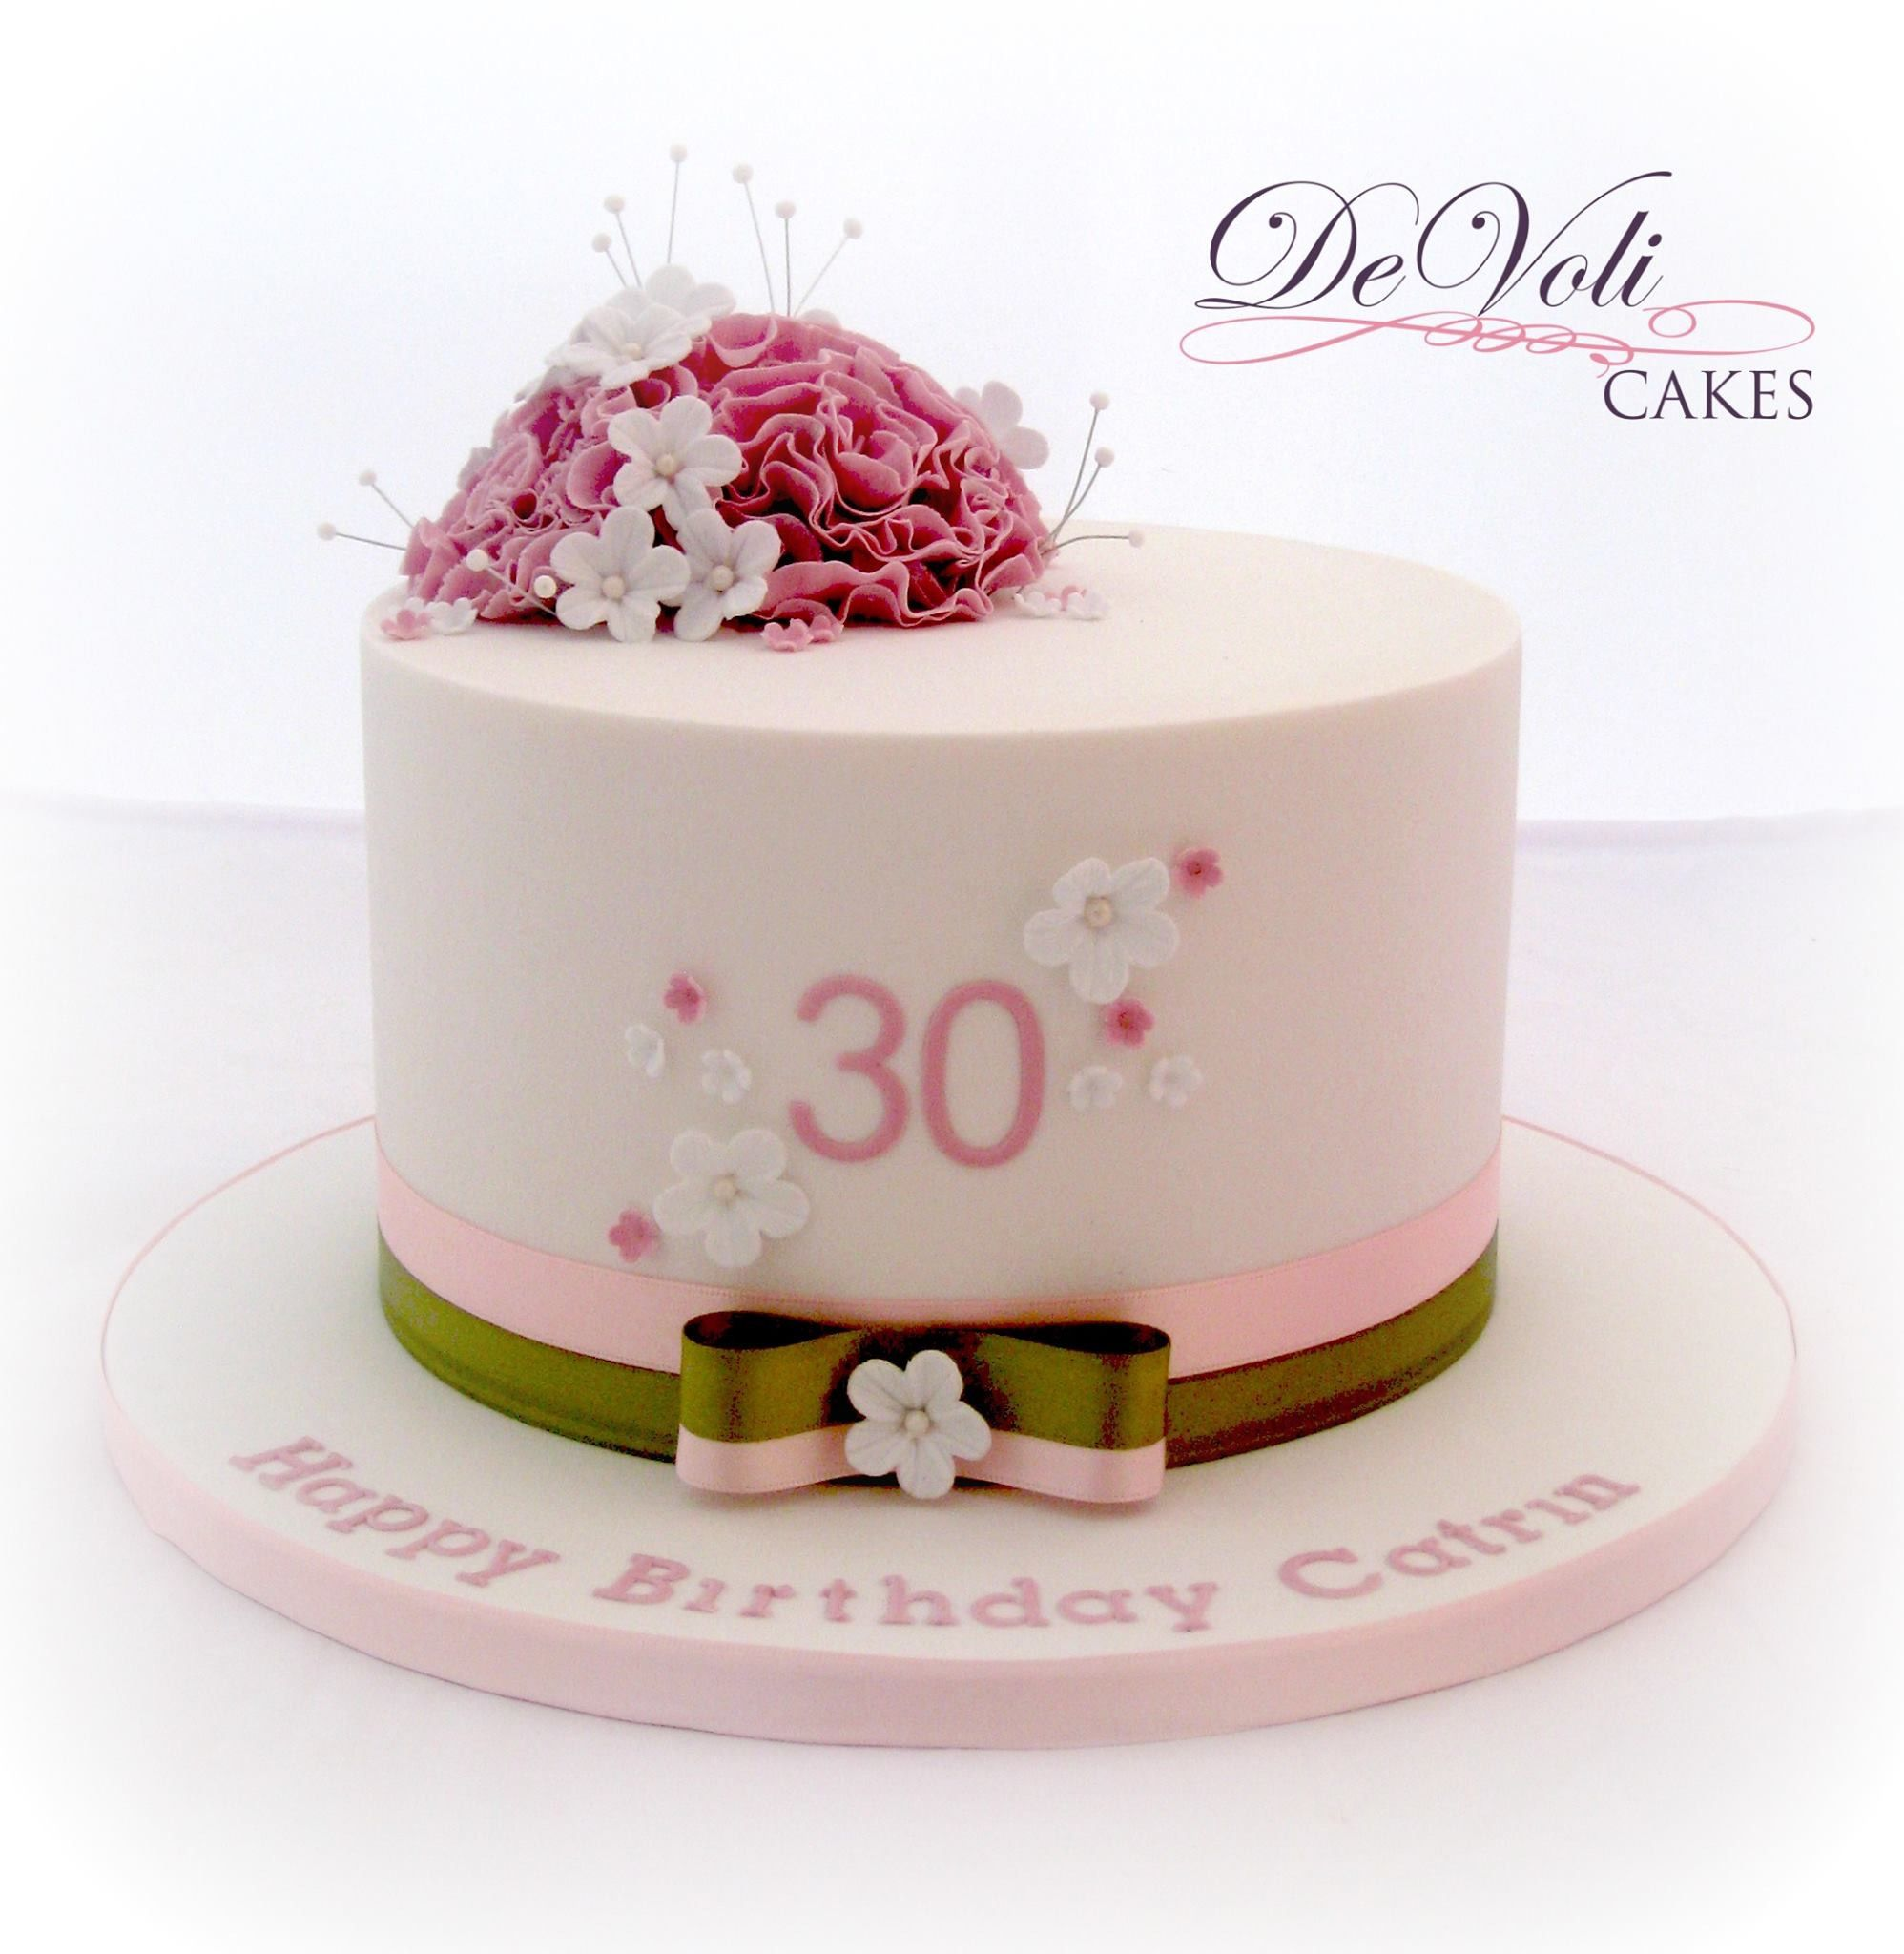 Small Simple And Elegant Birthday Cake 30th Birthday Cake For